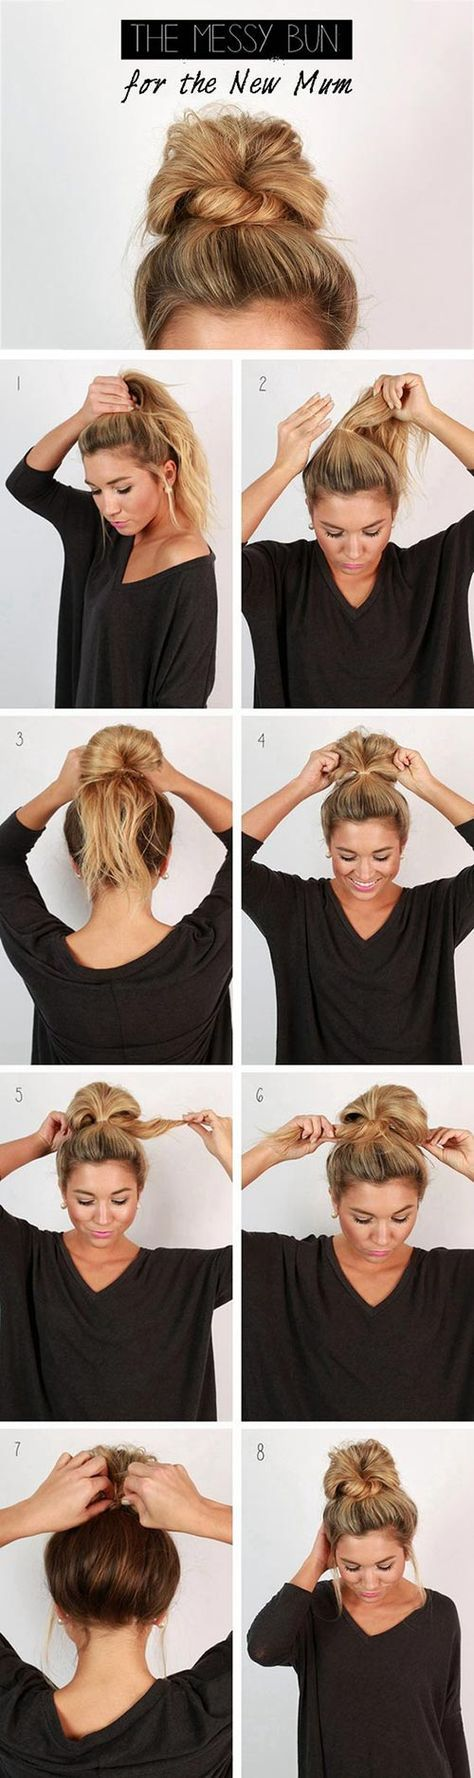 Coolest messy super high bun tutorial for long hair. #hair #hairstyle #womentriangle